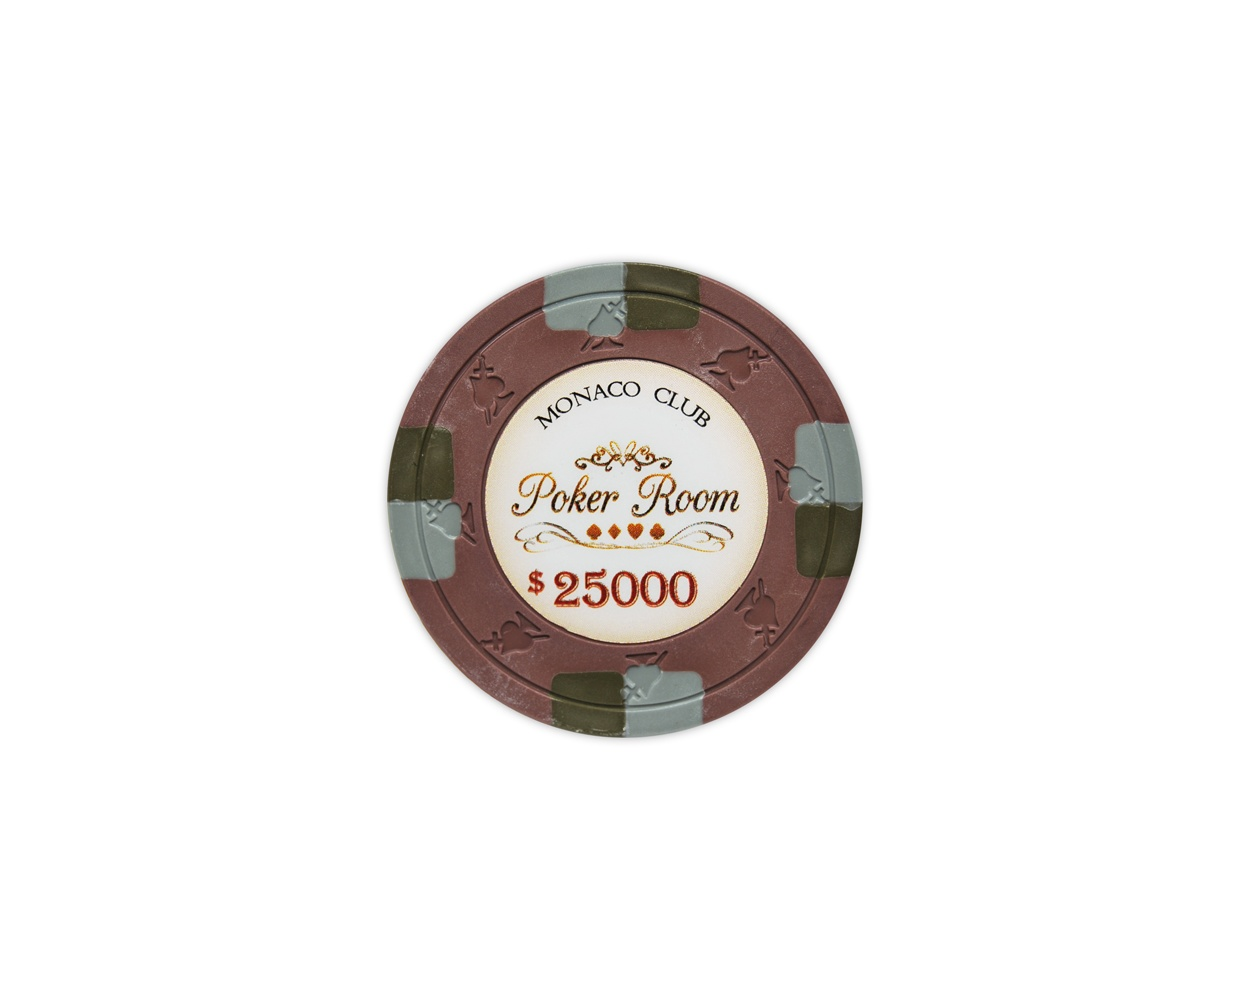 Monaco Club - $25000 Brown Clay Poker Chips